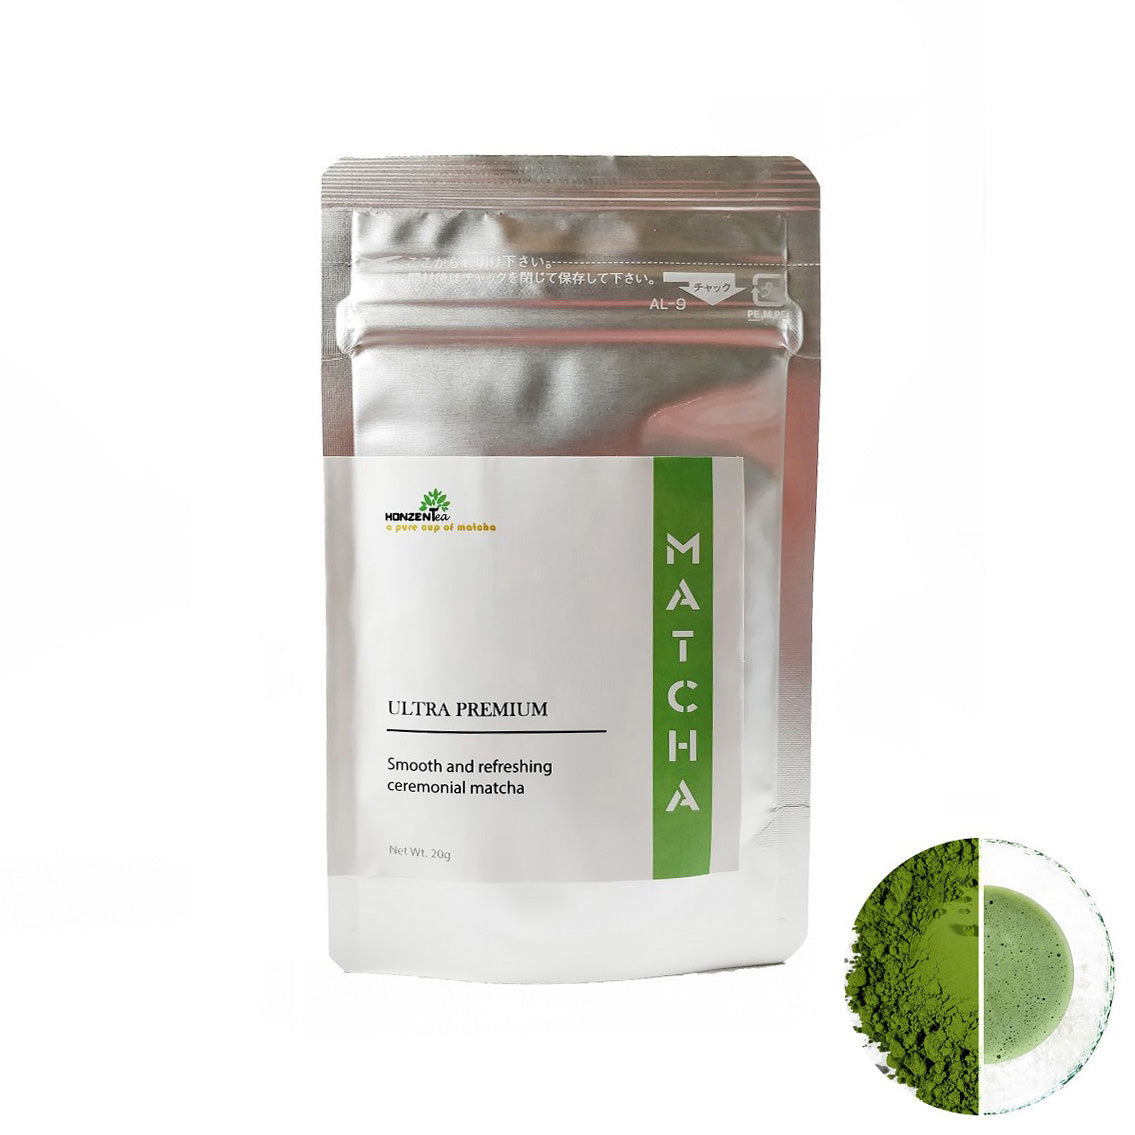 ULTRA PREMIUM - Smooth and refreshing ceremonial Matcha 20g